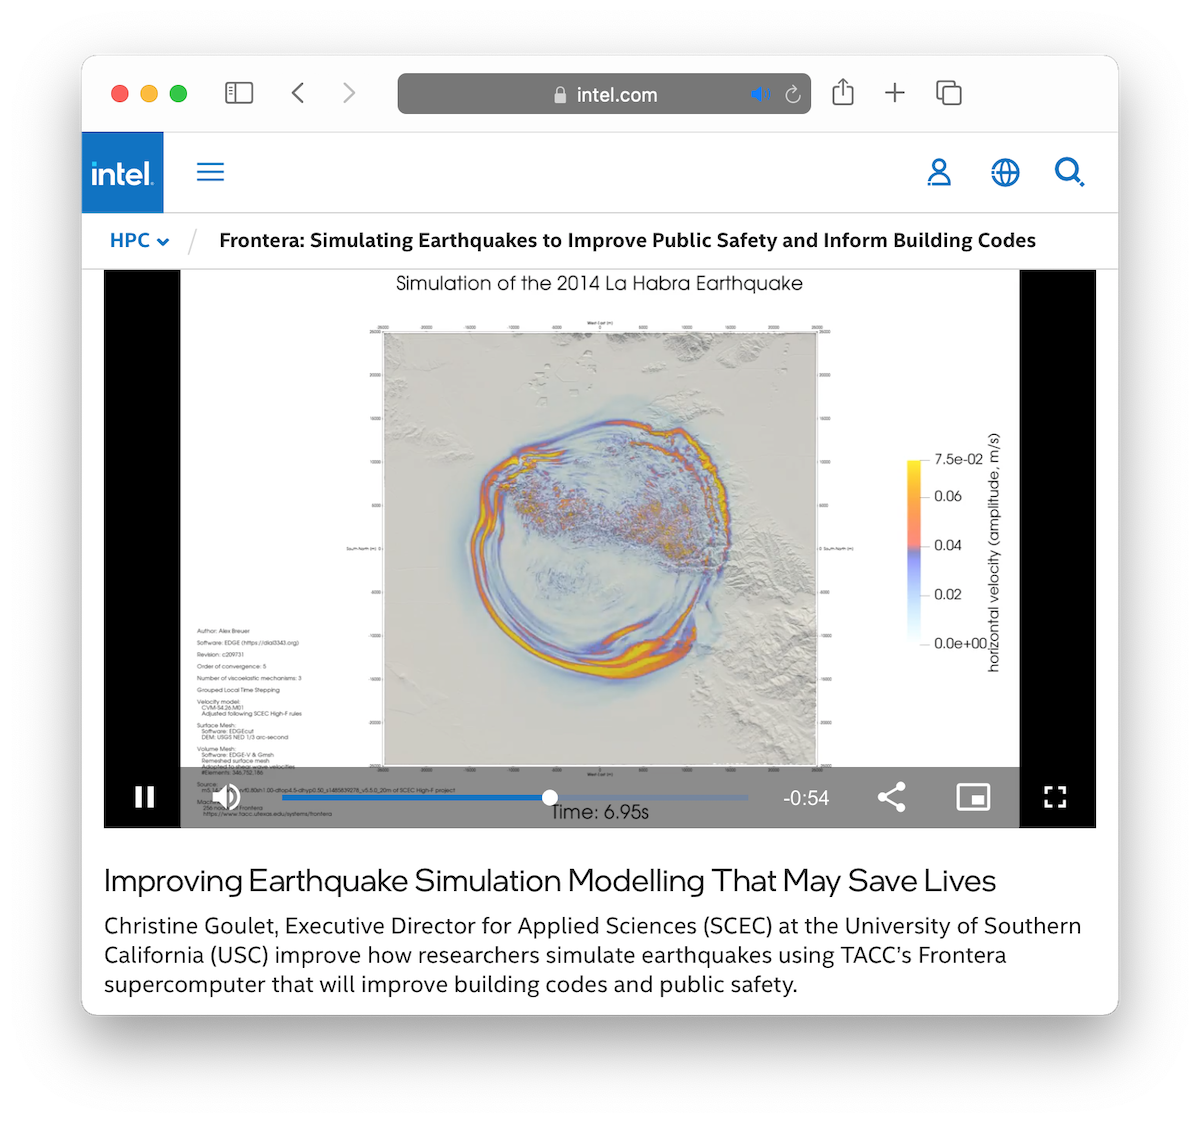 Improving Earthquake Simulation Modeling That May Save Lives